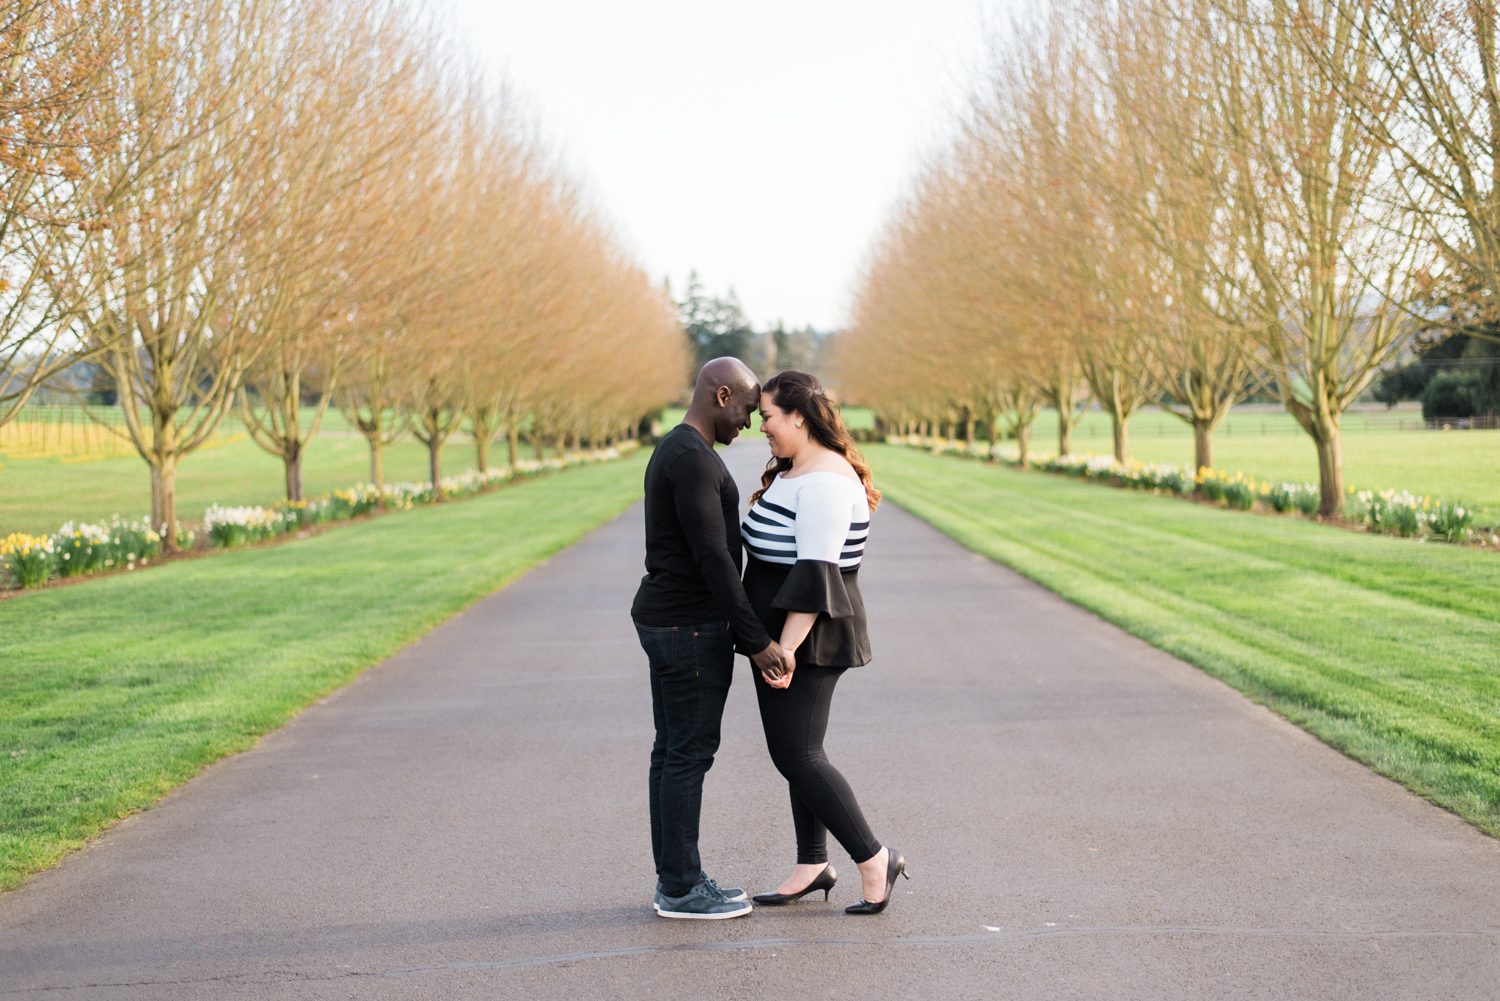 stoller-vineyards-engagement-photos-portland-oregon-shelley-marie-photo-224.jpg